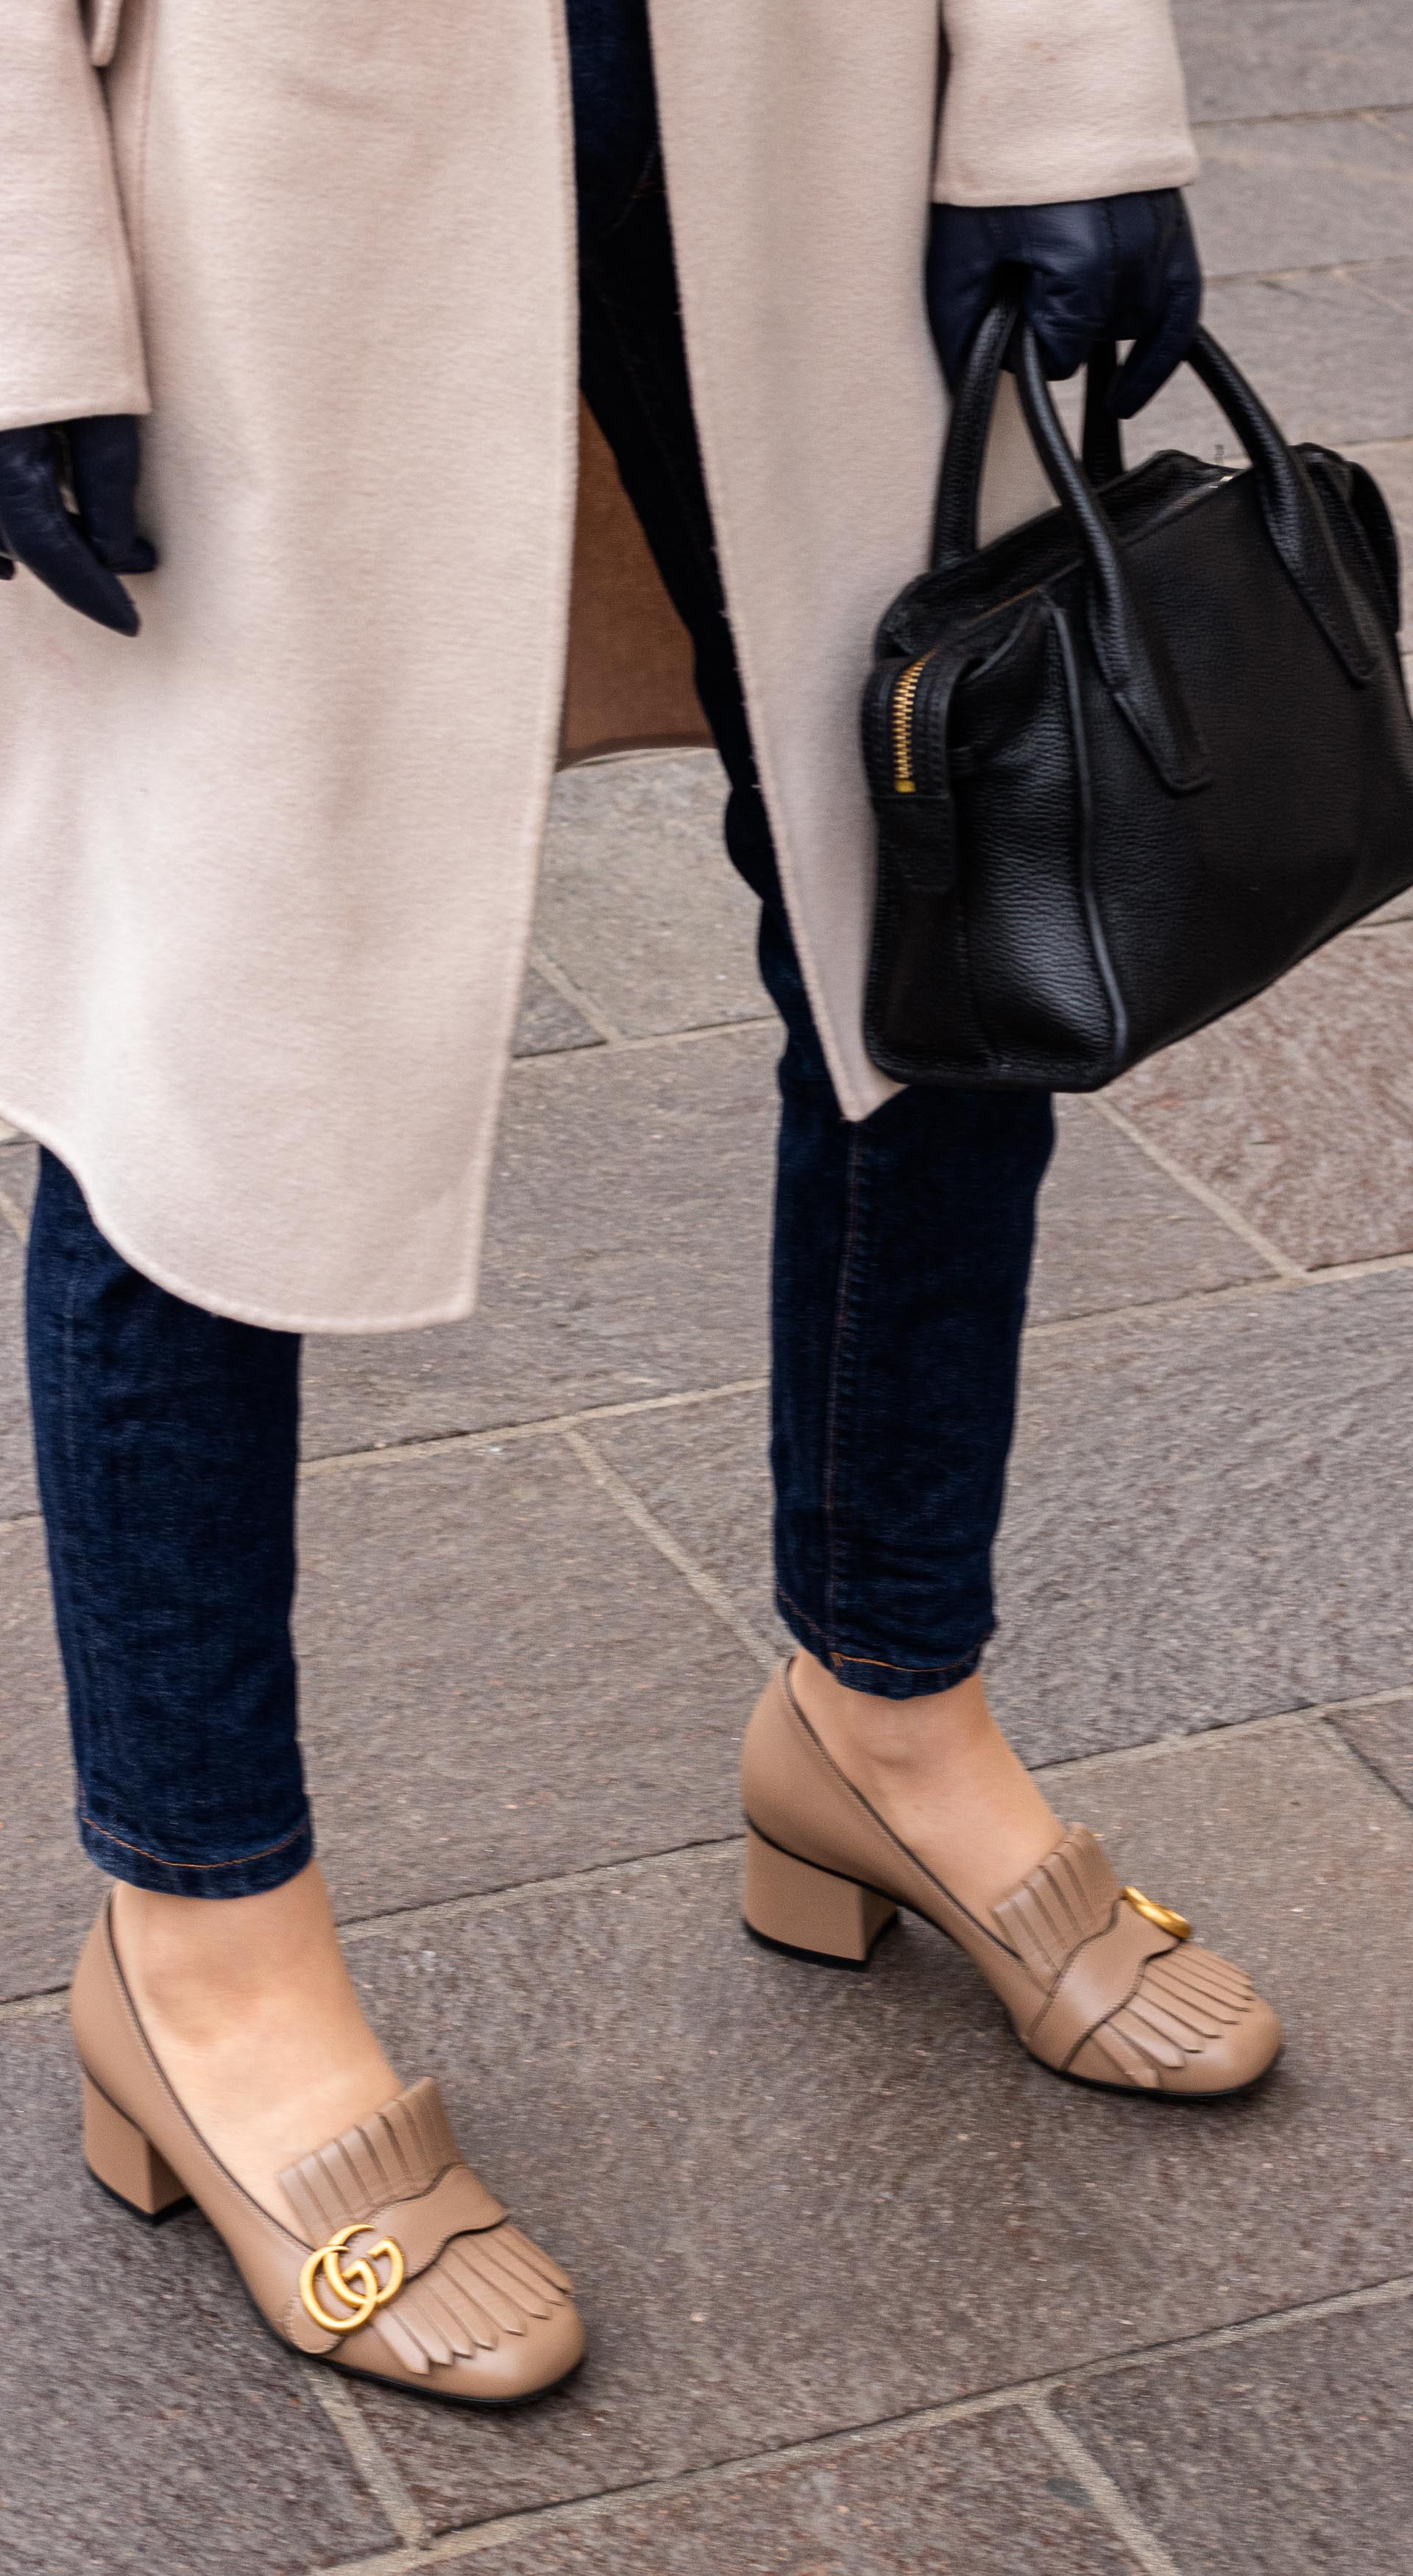 Fashion blogger Veronika Lipar of Brunette from Wall Street wearing simple transitional outfit Gucci heeled loafer A.P.C. navy blue jeans Weekend Max Mara double breasted coat black top handle bag blue leather gloves on the street in-between seasons